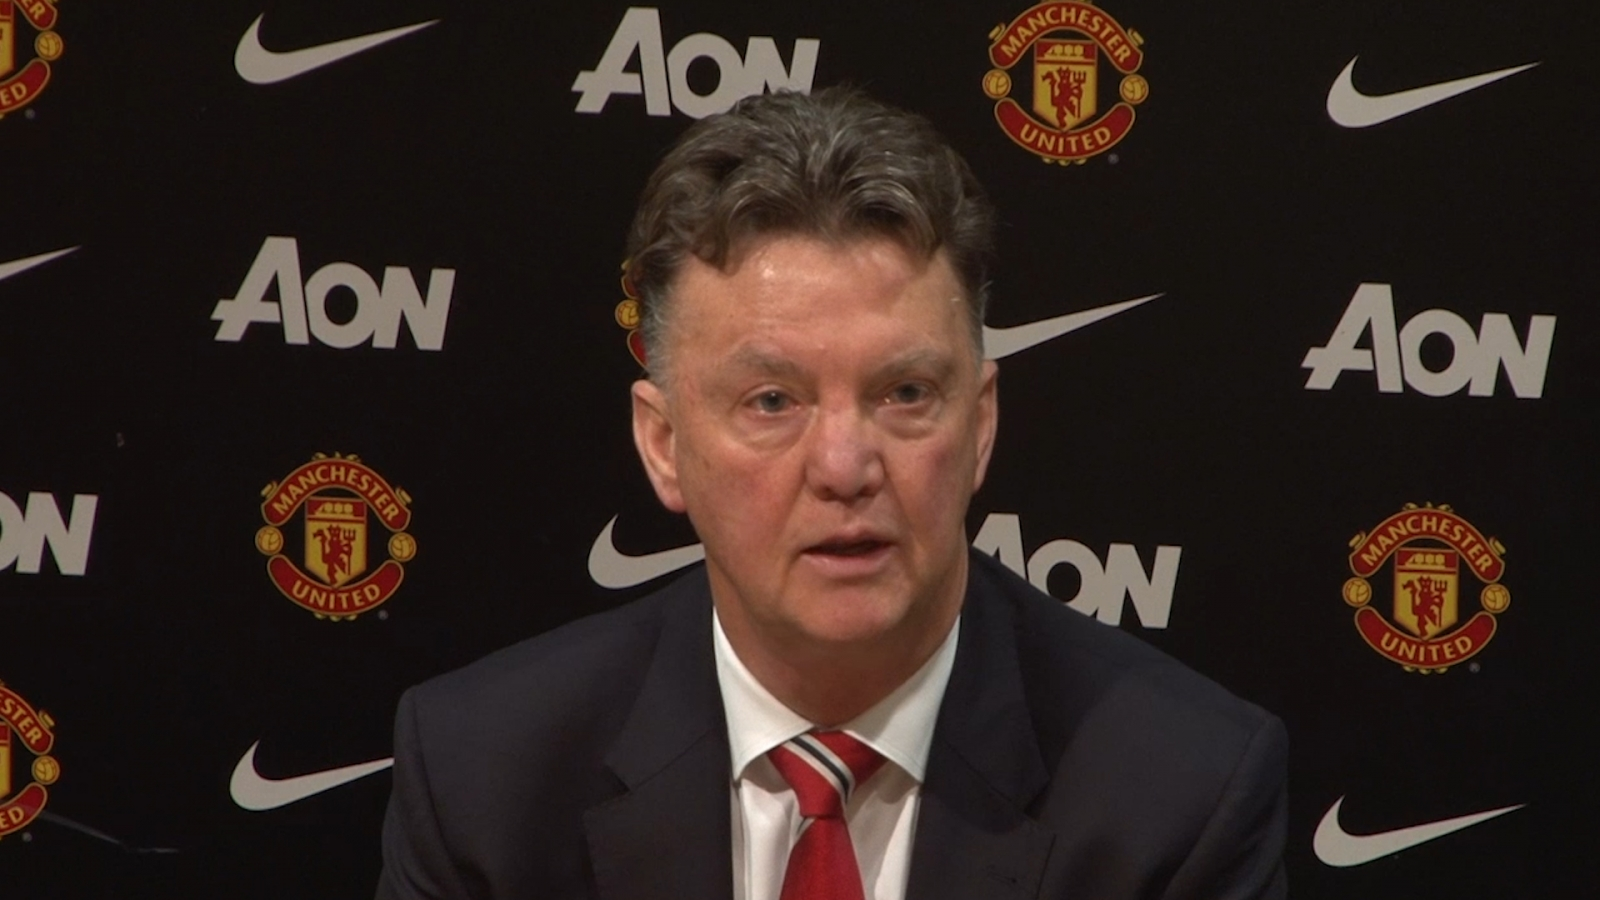 Louis van Gaal reacts angrily to David Moyes comparison